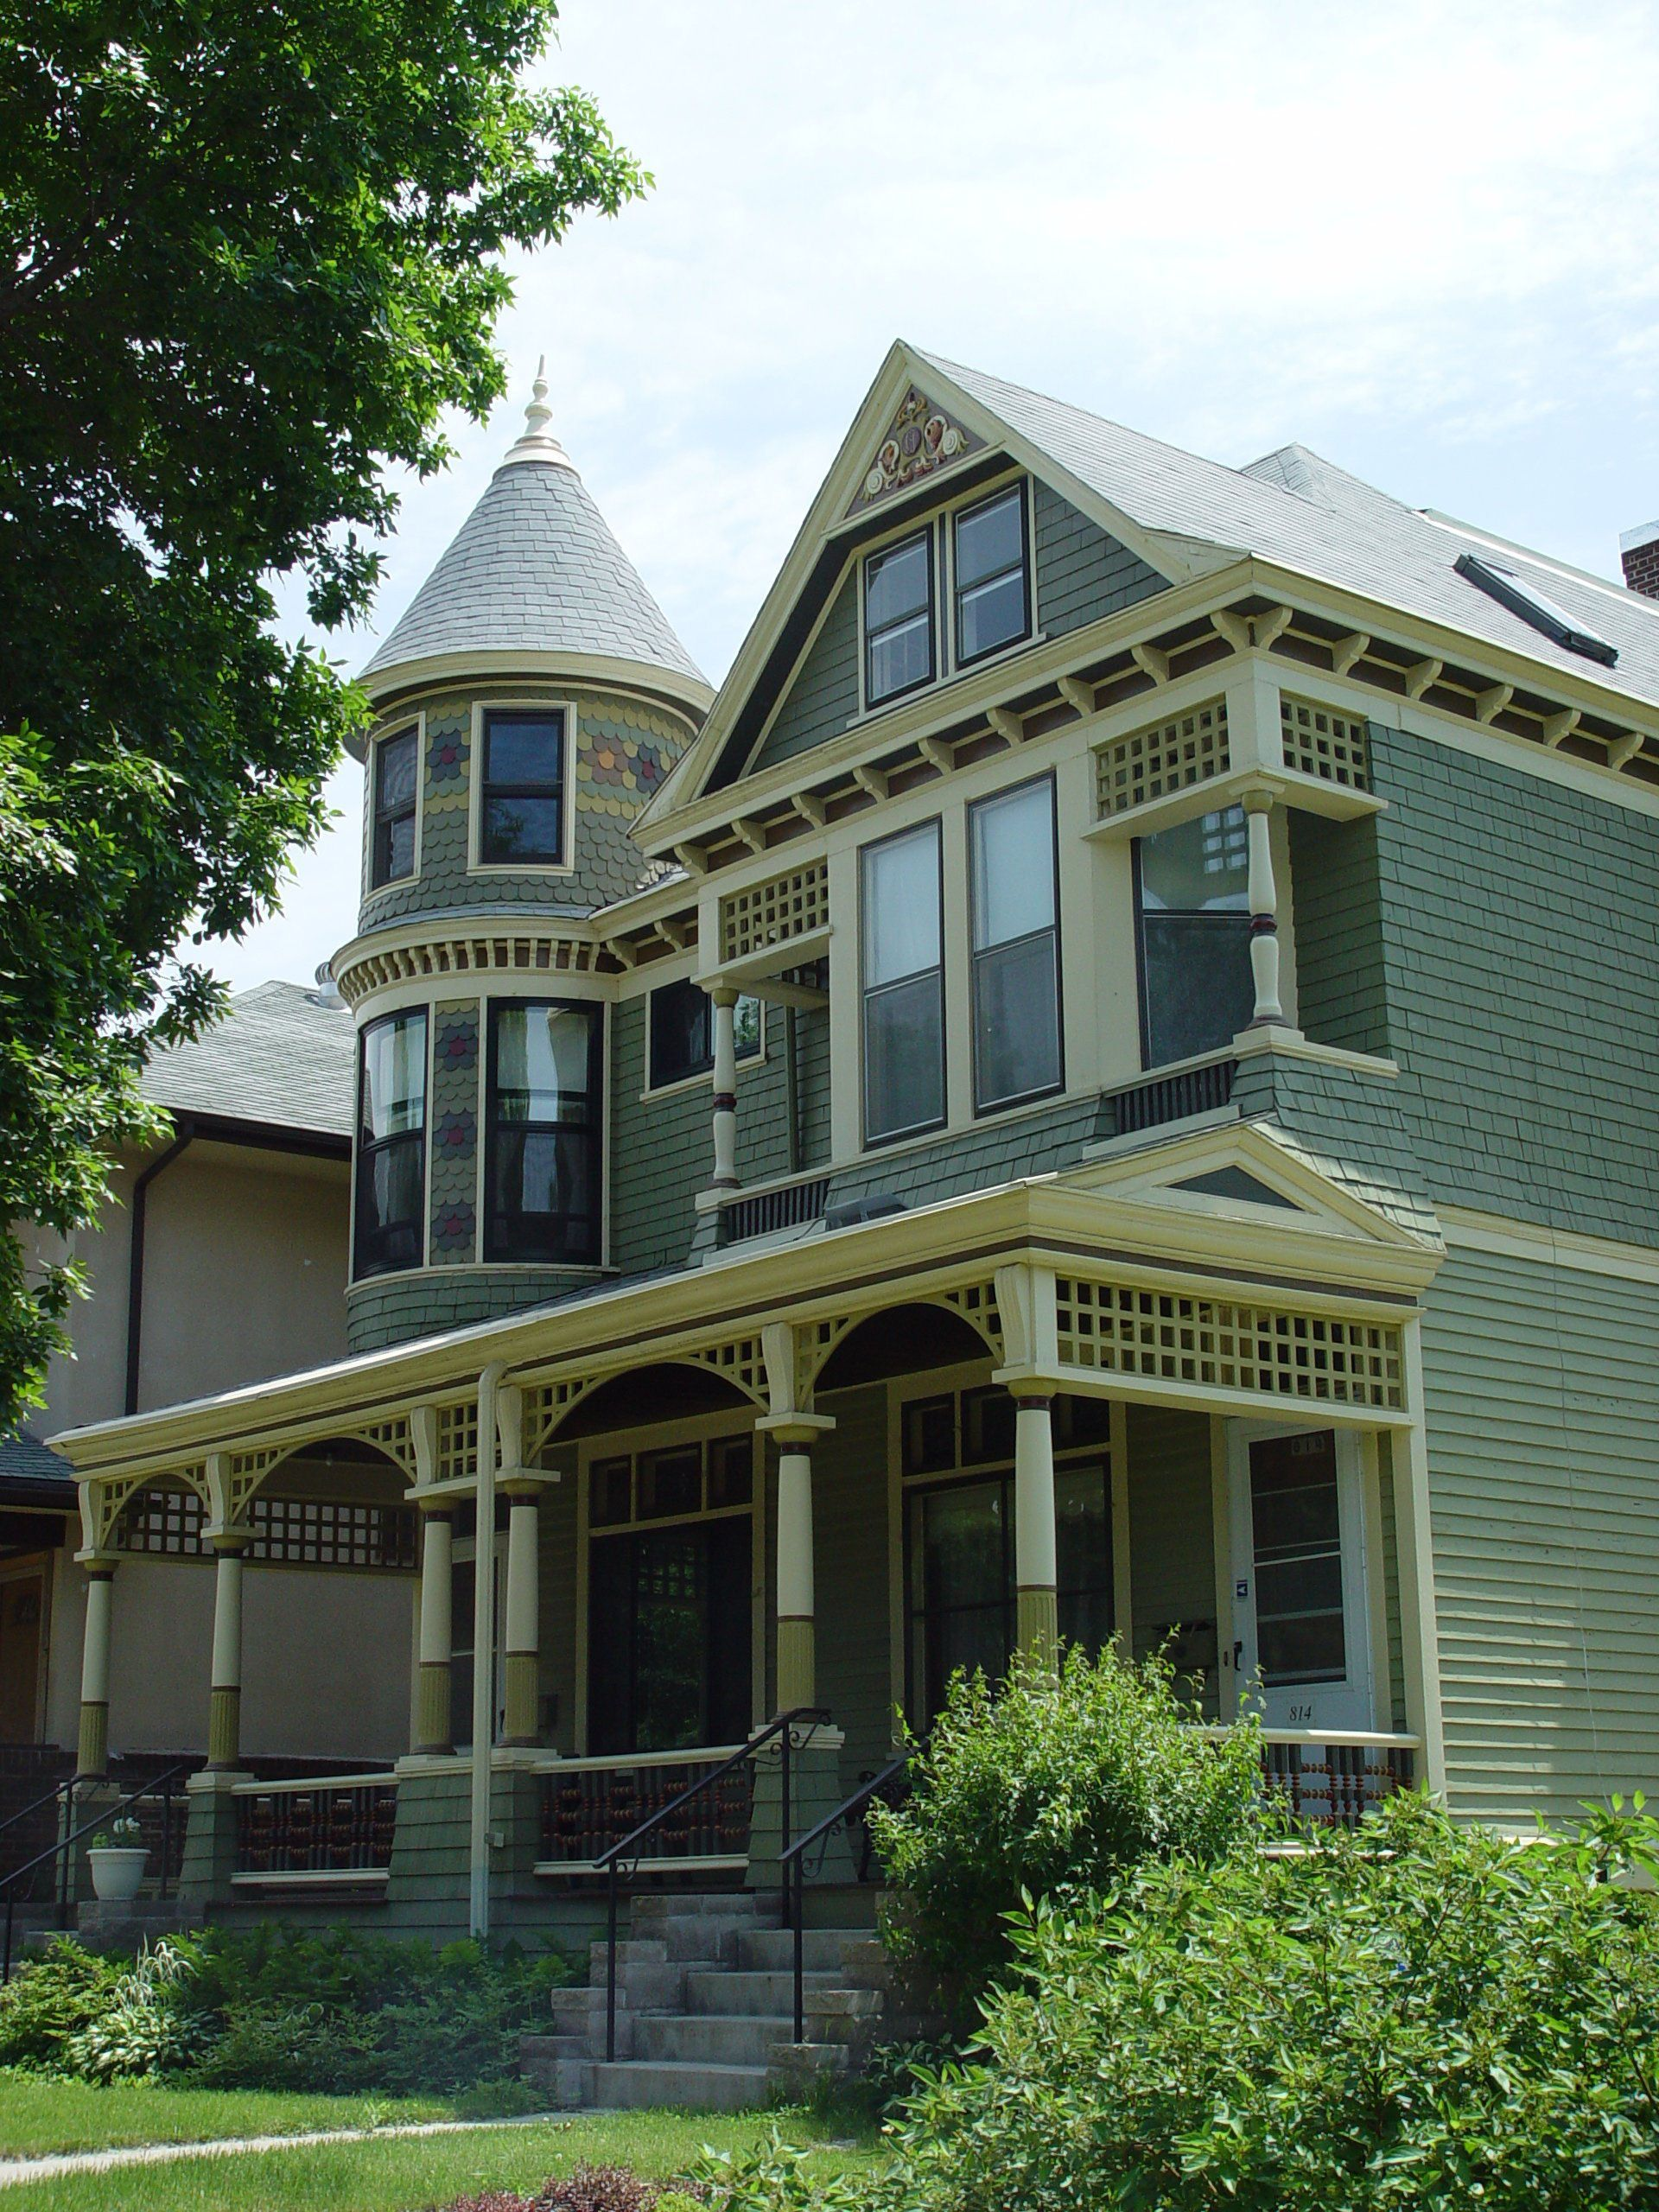 Restored Victorian Homes House Deck Amazing Buildings